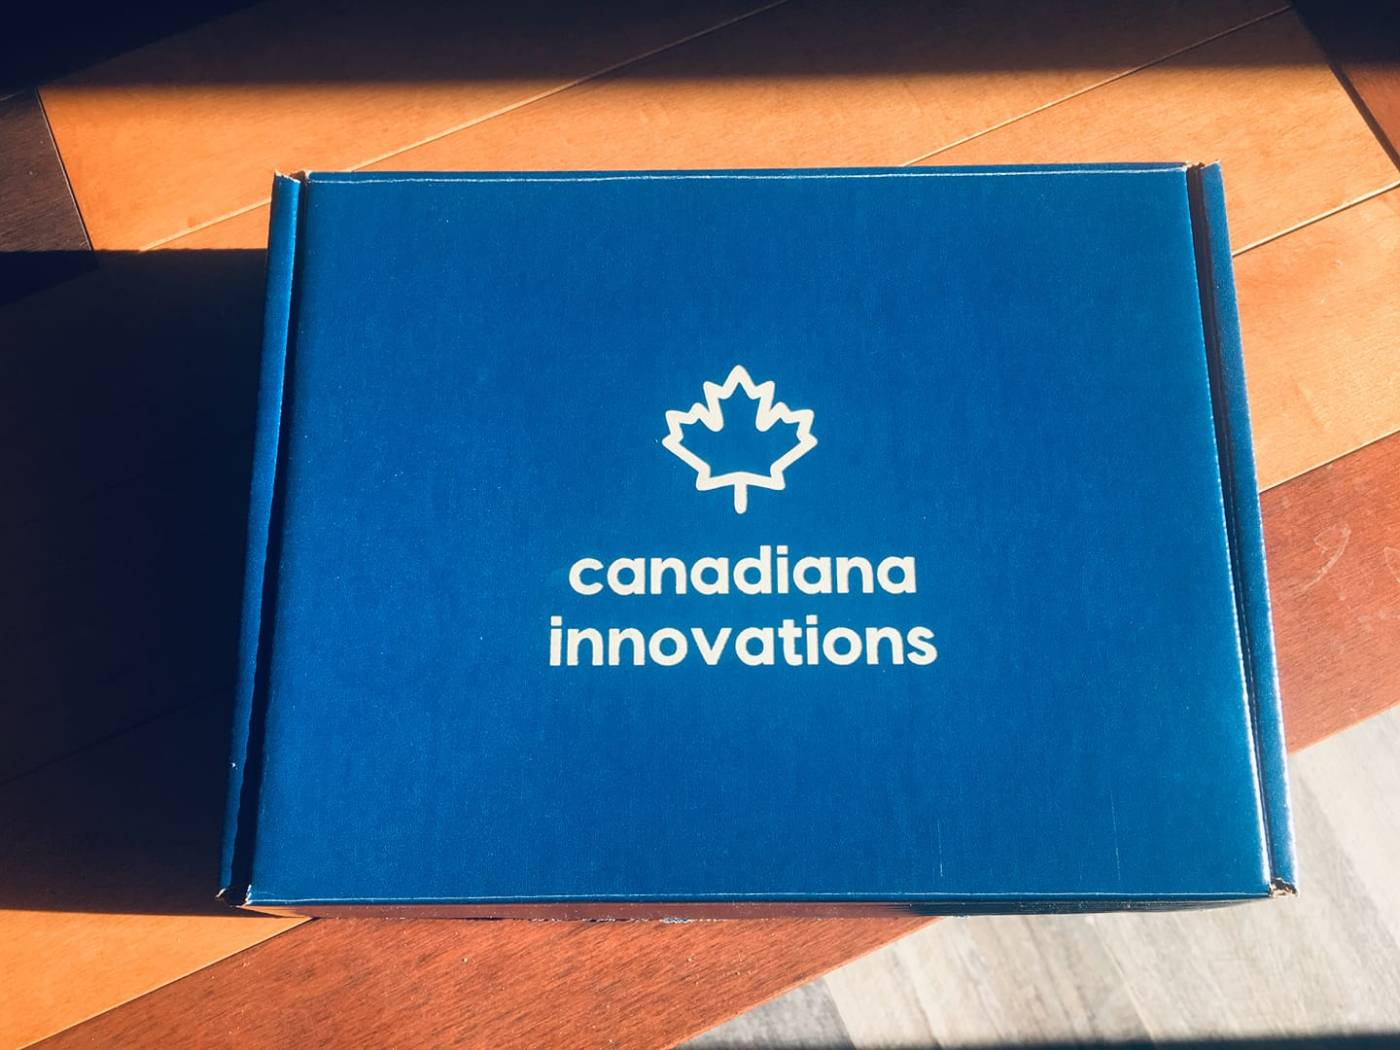 A sample box for Canadiana Innovations